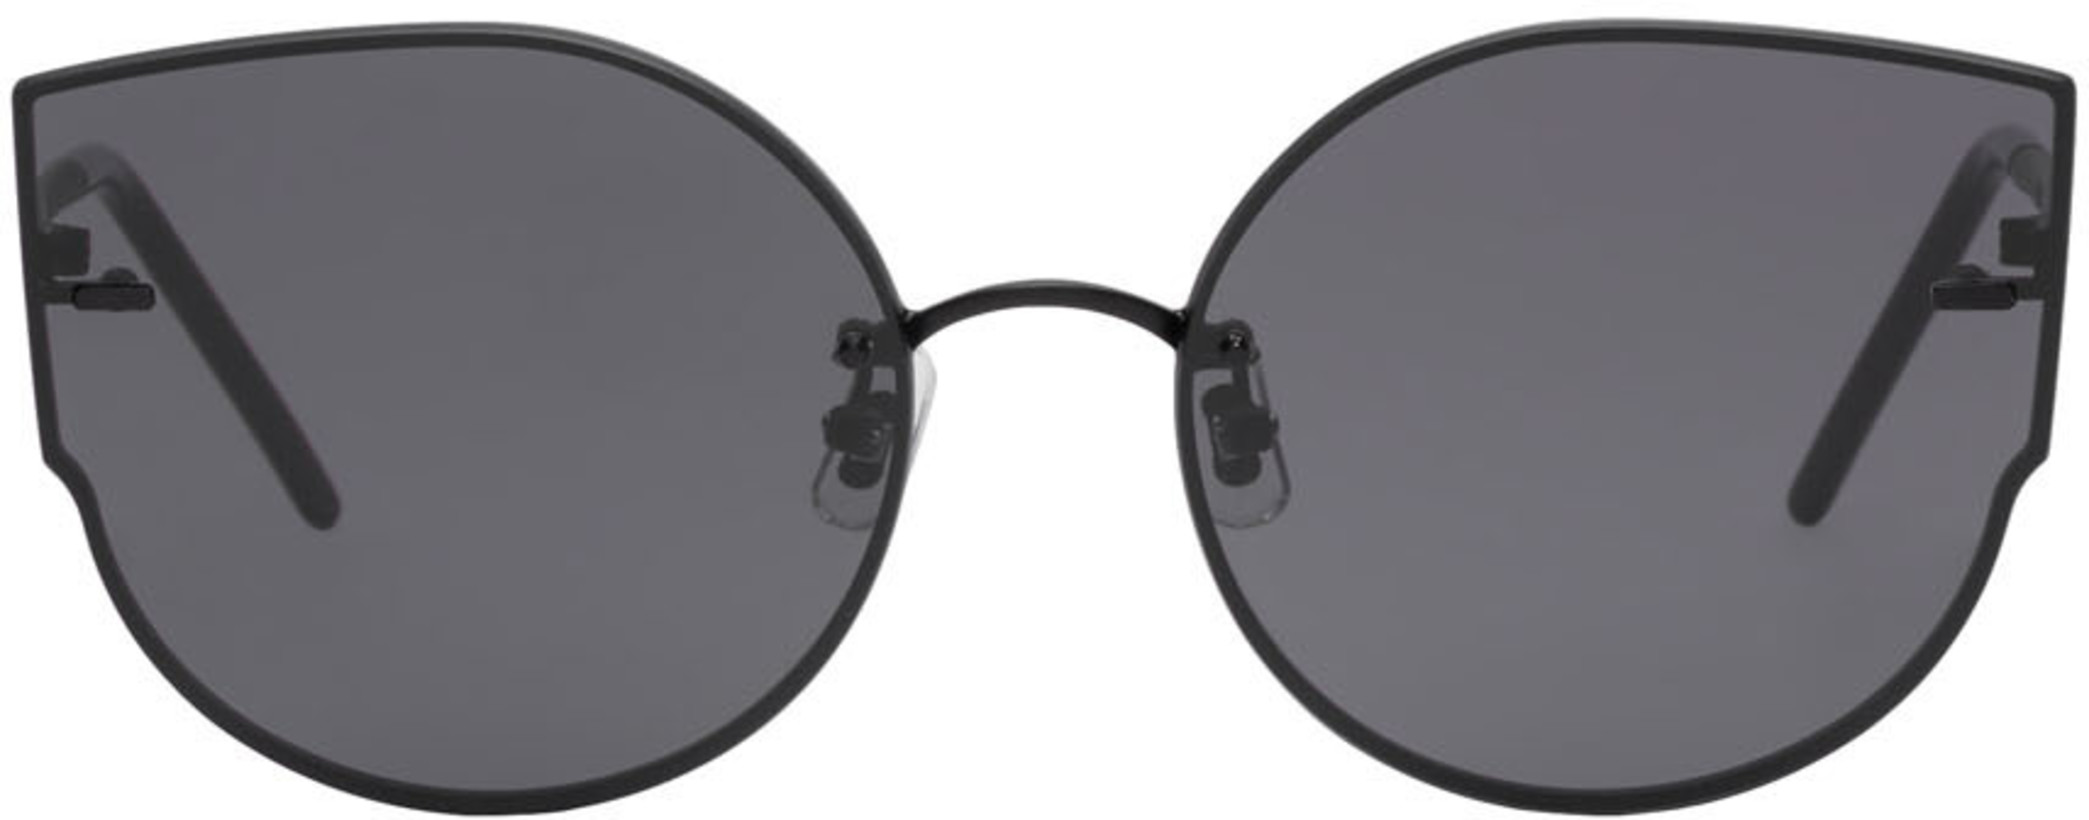 Gentle Monster Black Ami Adam Sunglasses